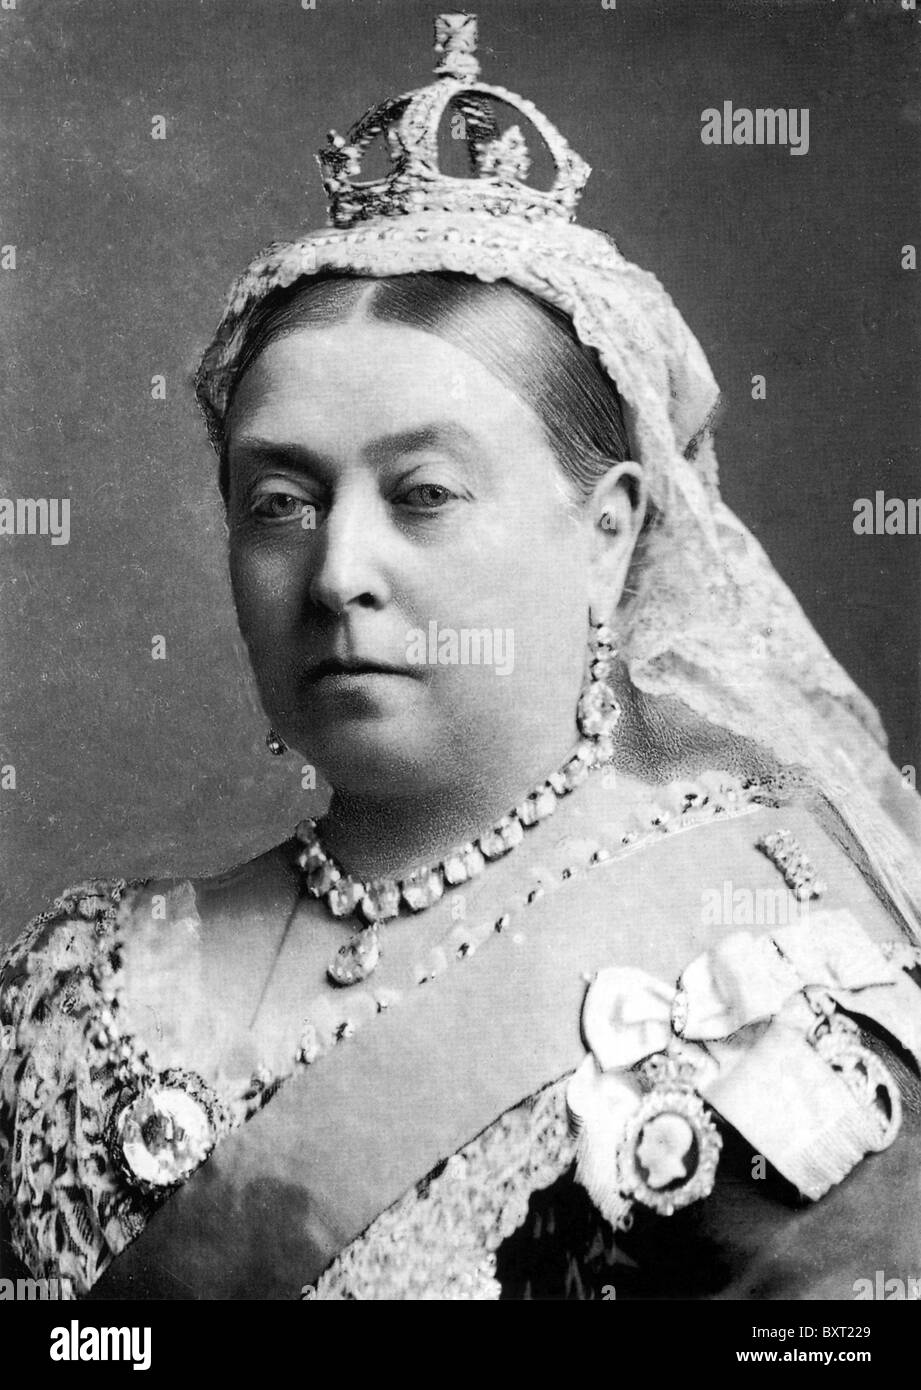 QUEEN VICTORIA  (1881-1901) British monarch photographed by Alexander Bassano in 1882 - Stock Image